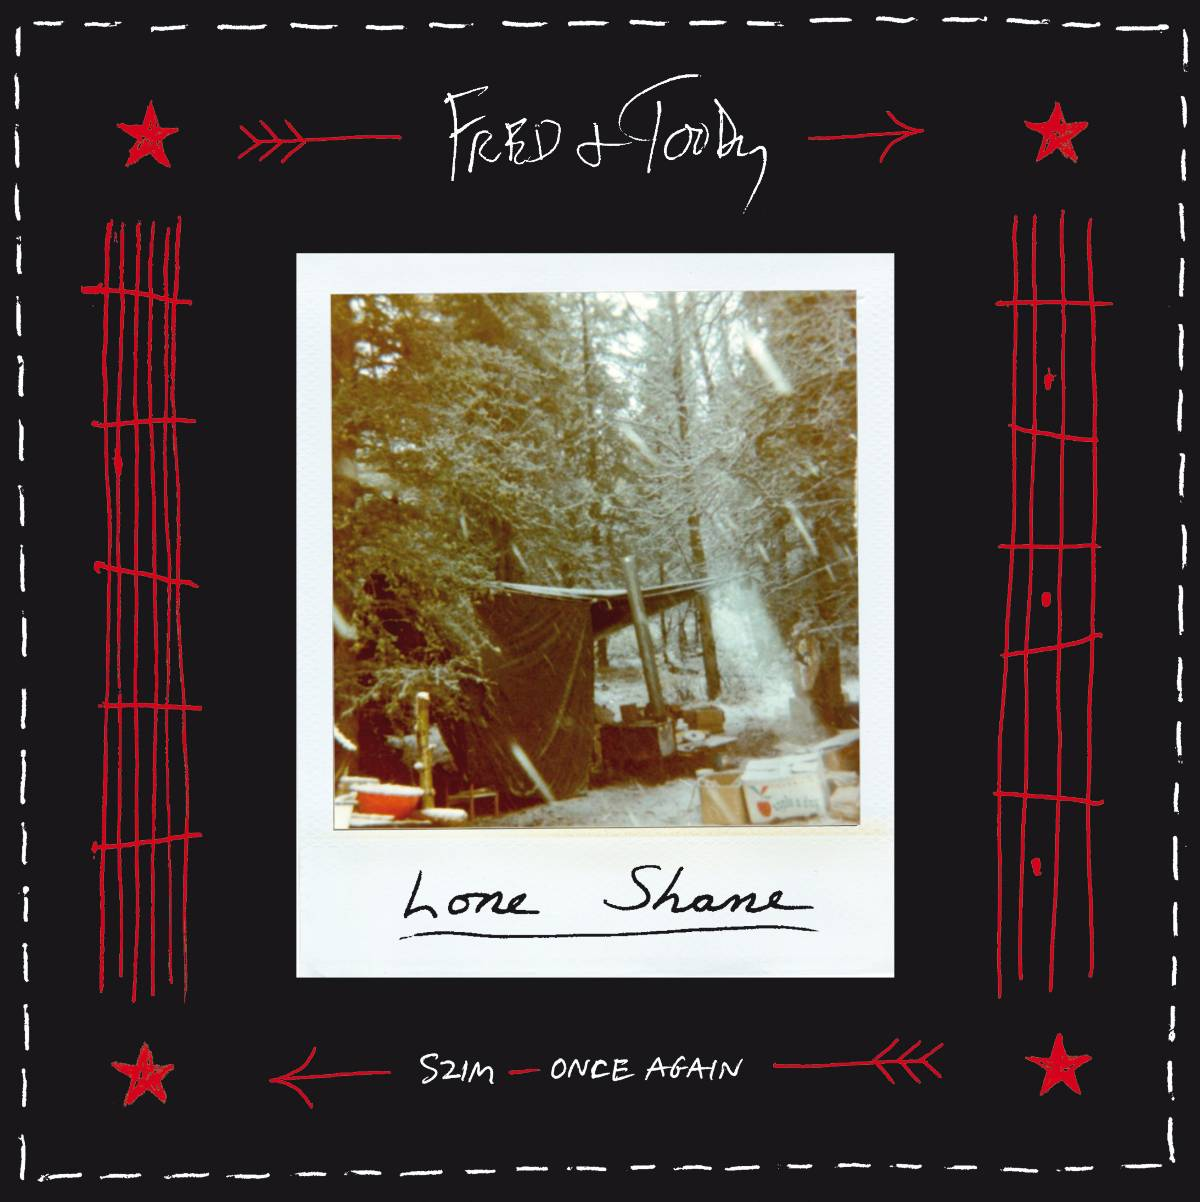 Fred&ToodyCole+szim_7inch_cover_©szim_1000px